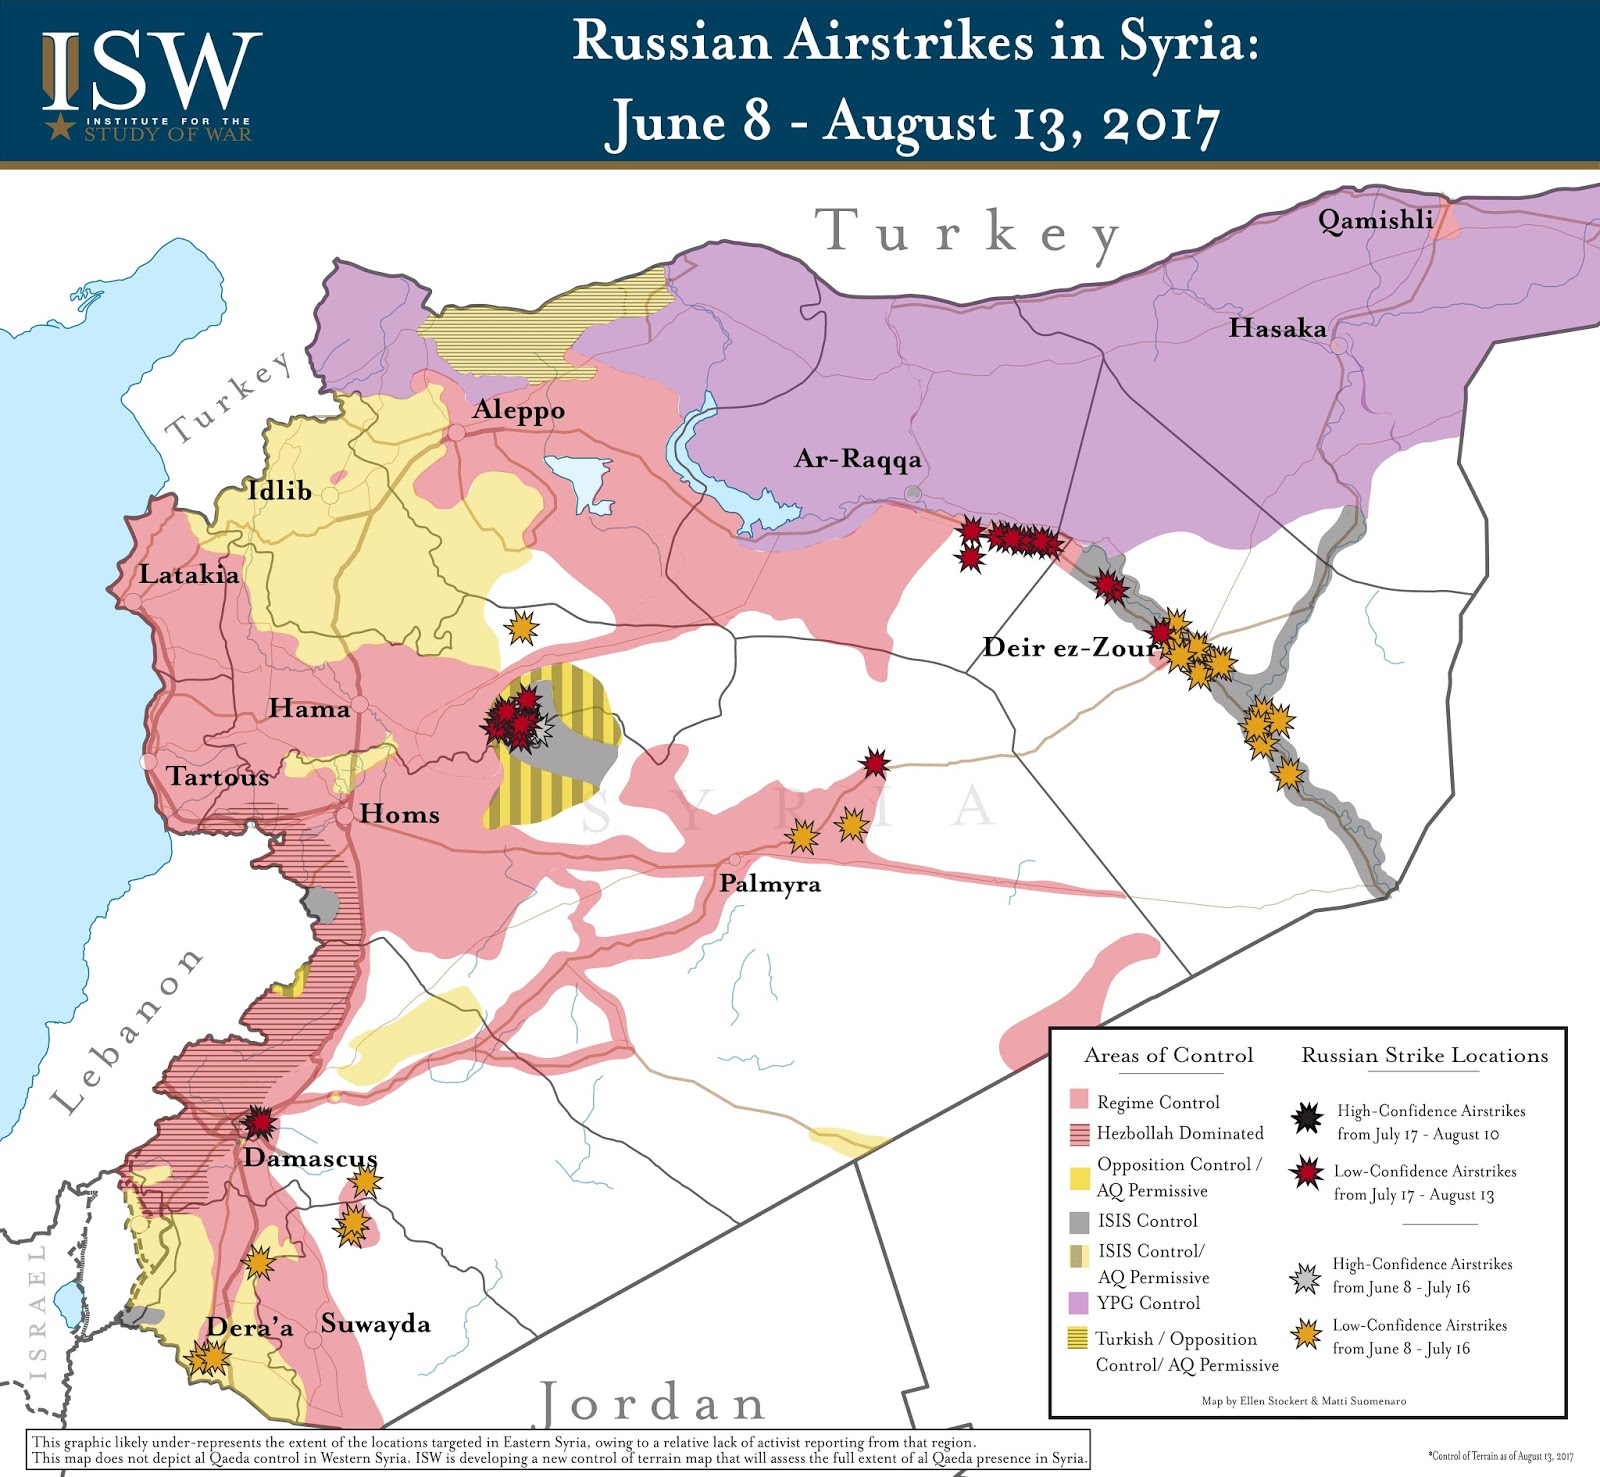 Russia's Syria Mirage: July 17 - August 13, 2017